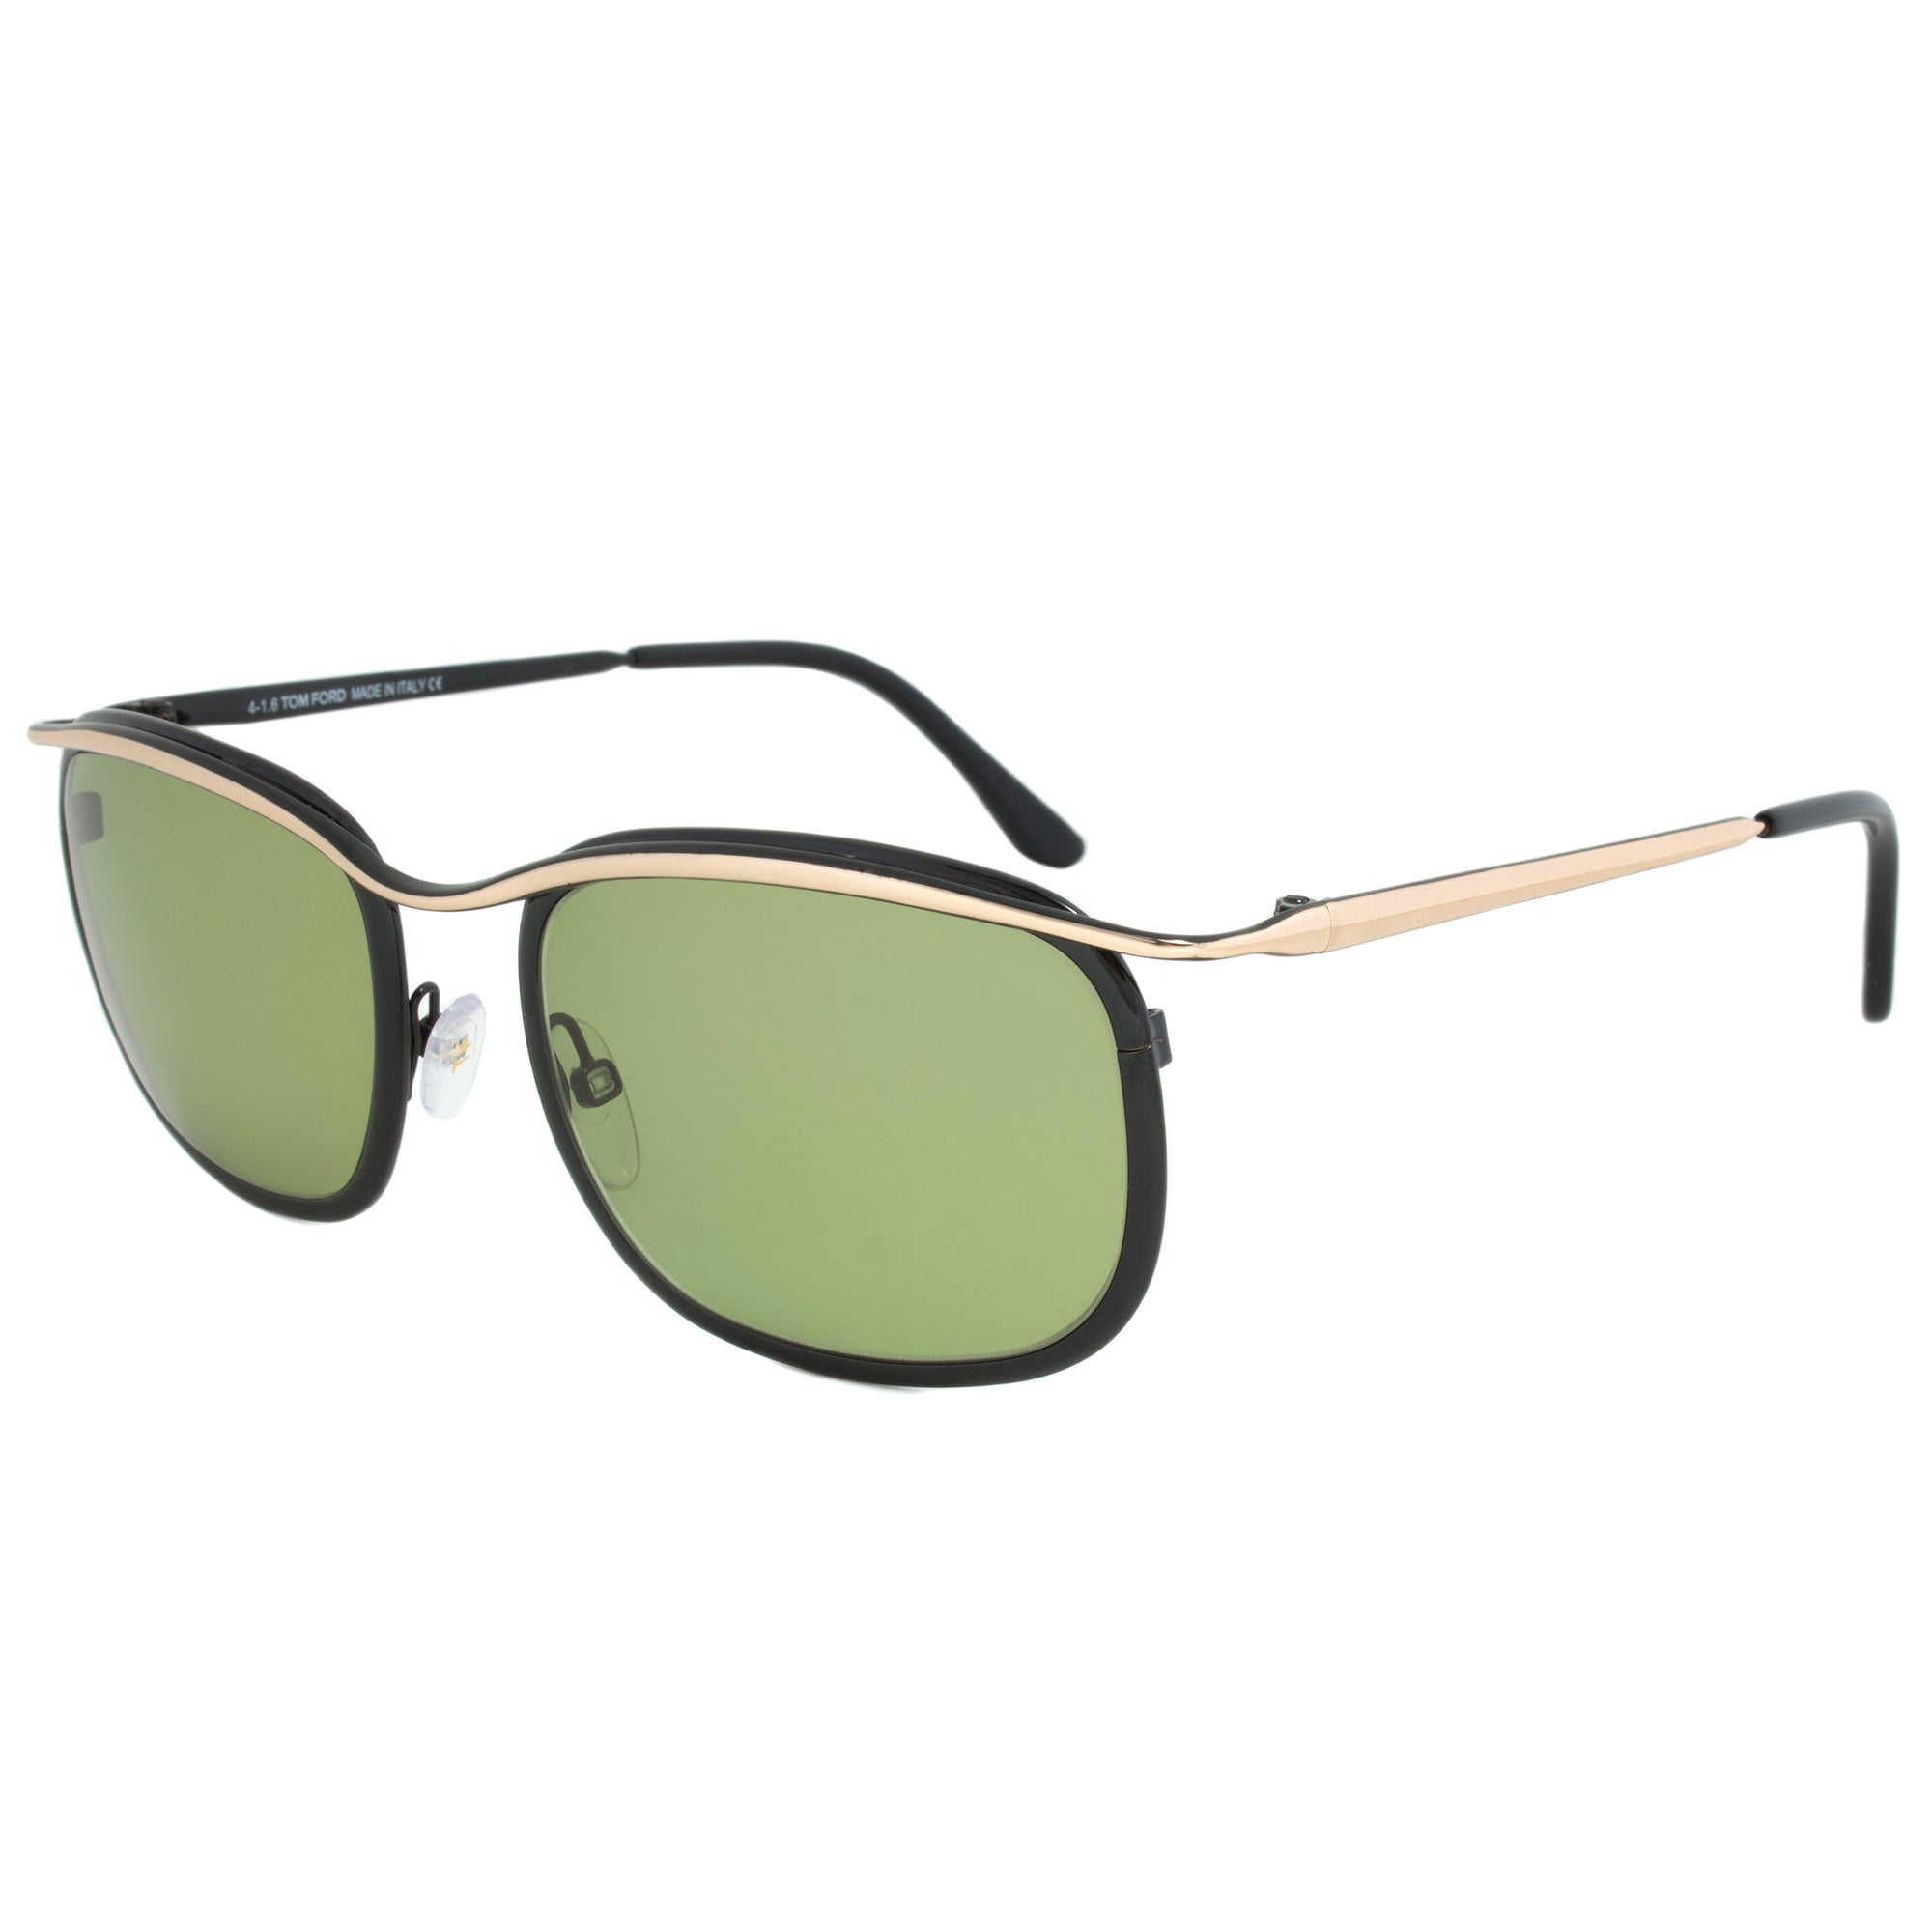 Tom Ford FT0419 Marcello Rectangular Sunglasses | Green Lens